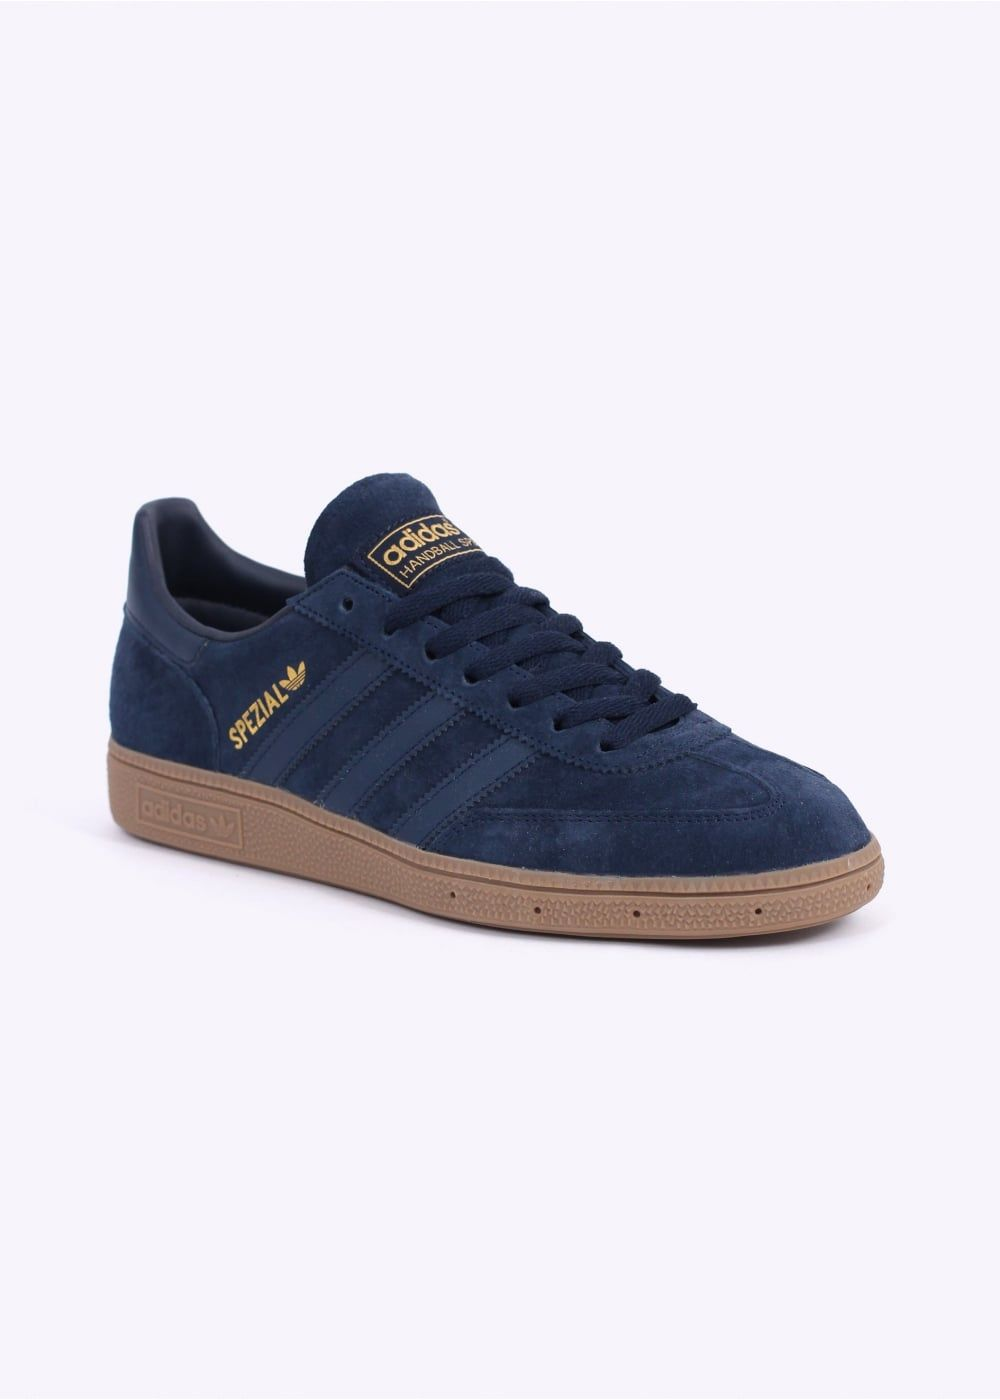 adidas Originals Men's Shoes SPEZIAL - Trainers - collegiate navy